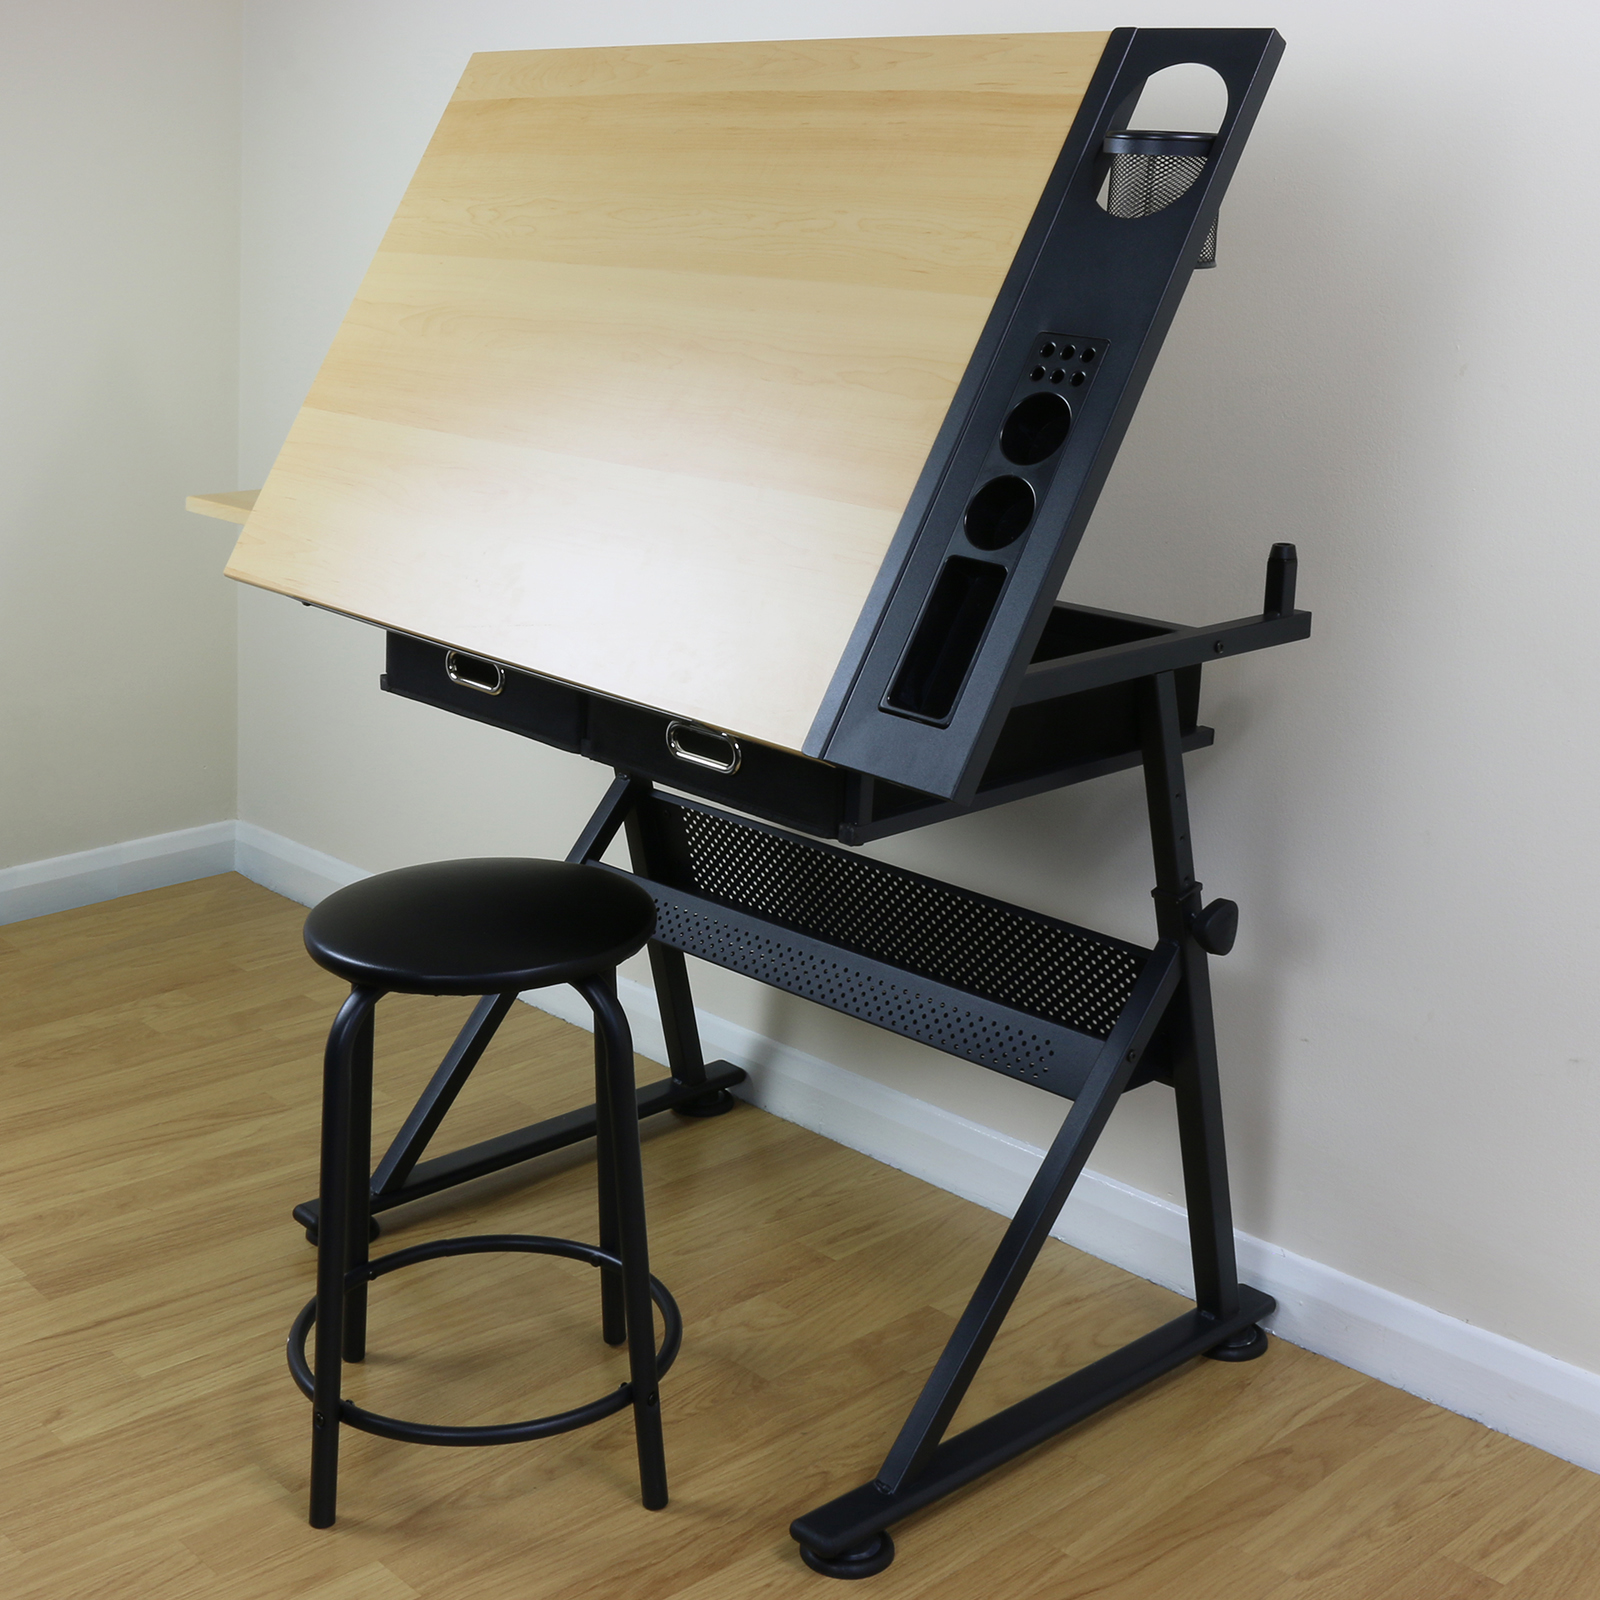 Adjustable Drawing Board Drafting Table With Stool Craft